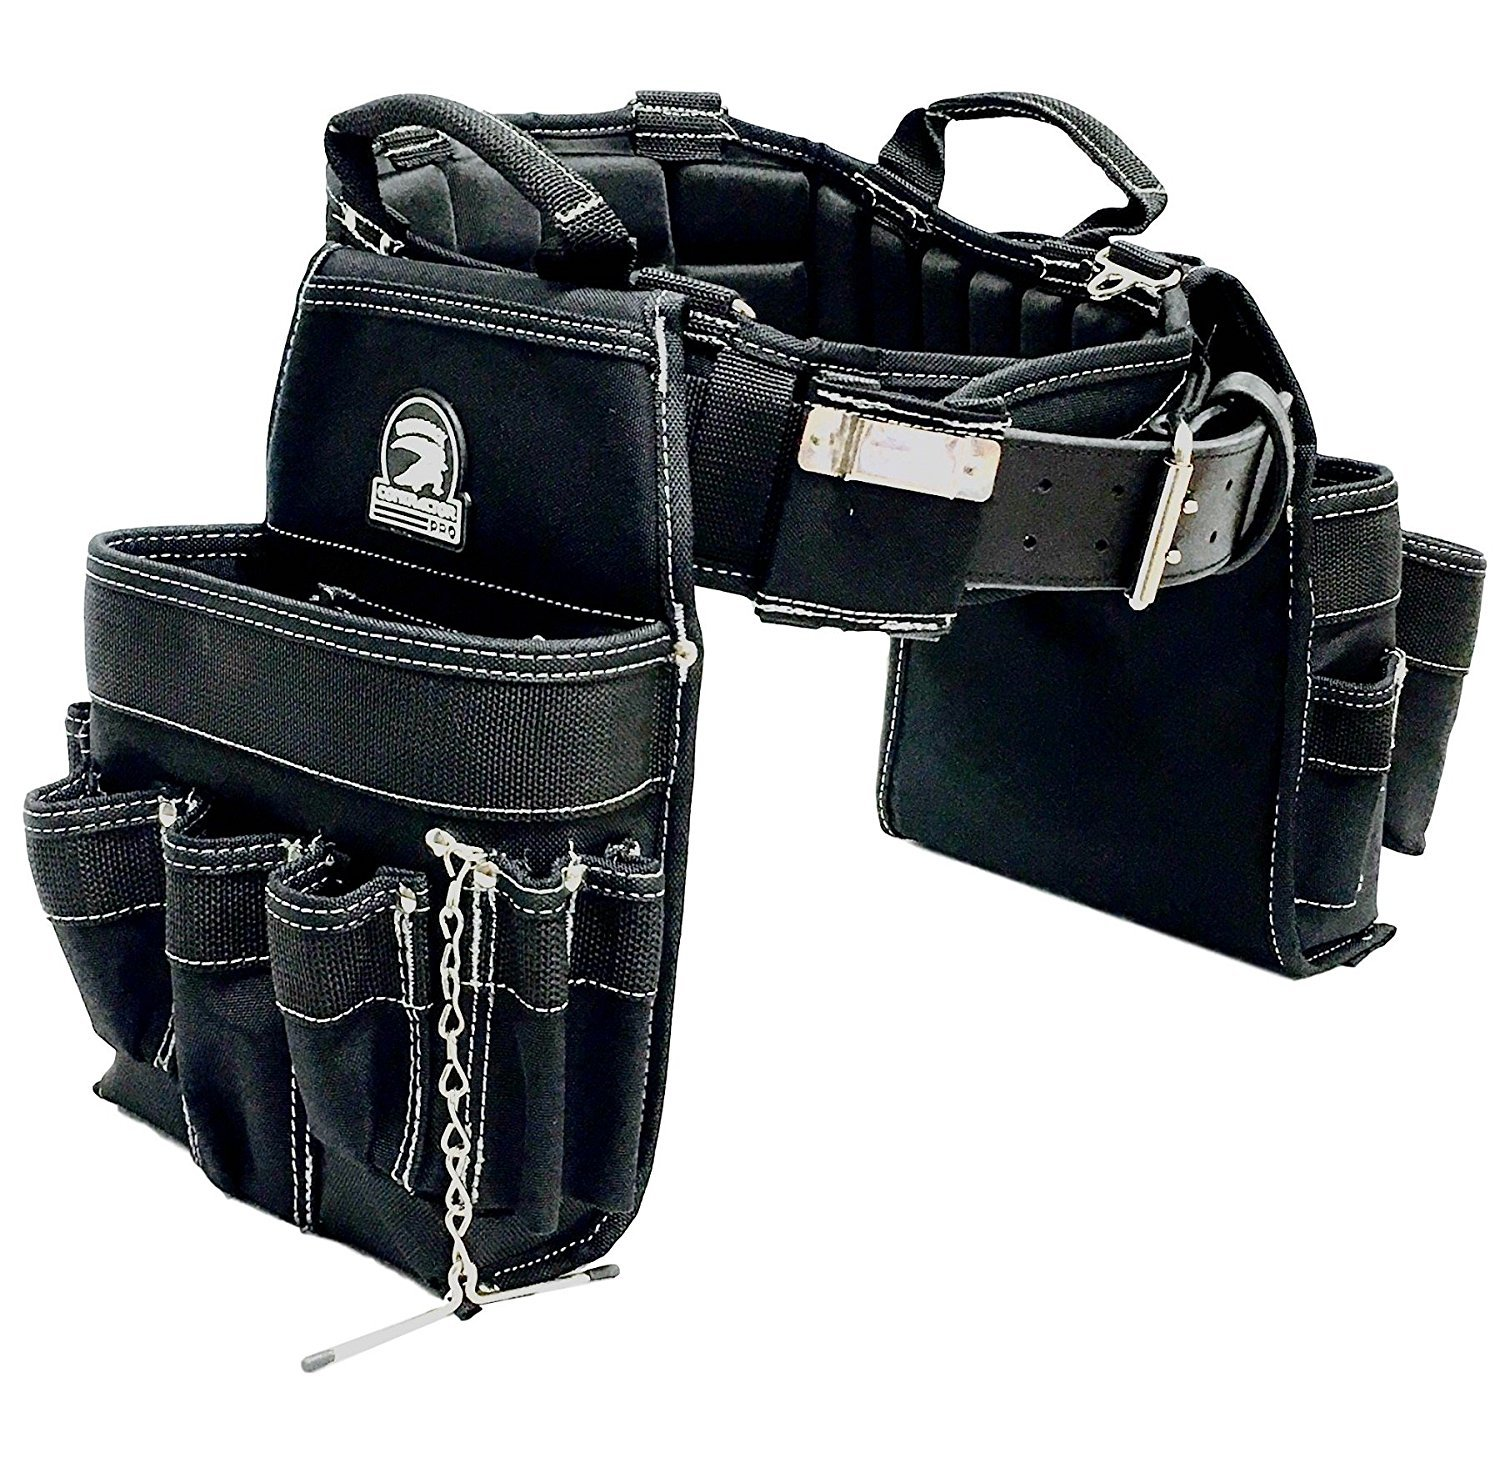 "TradeGear LARGE 36-40"" Electrician's Belt & Bag Combo – Heavy Duty Electricians Tool Belt Designed for Maximum Comfort & Durability – Ideal for All Electricians Tools – Partnered w/GatorBack"